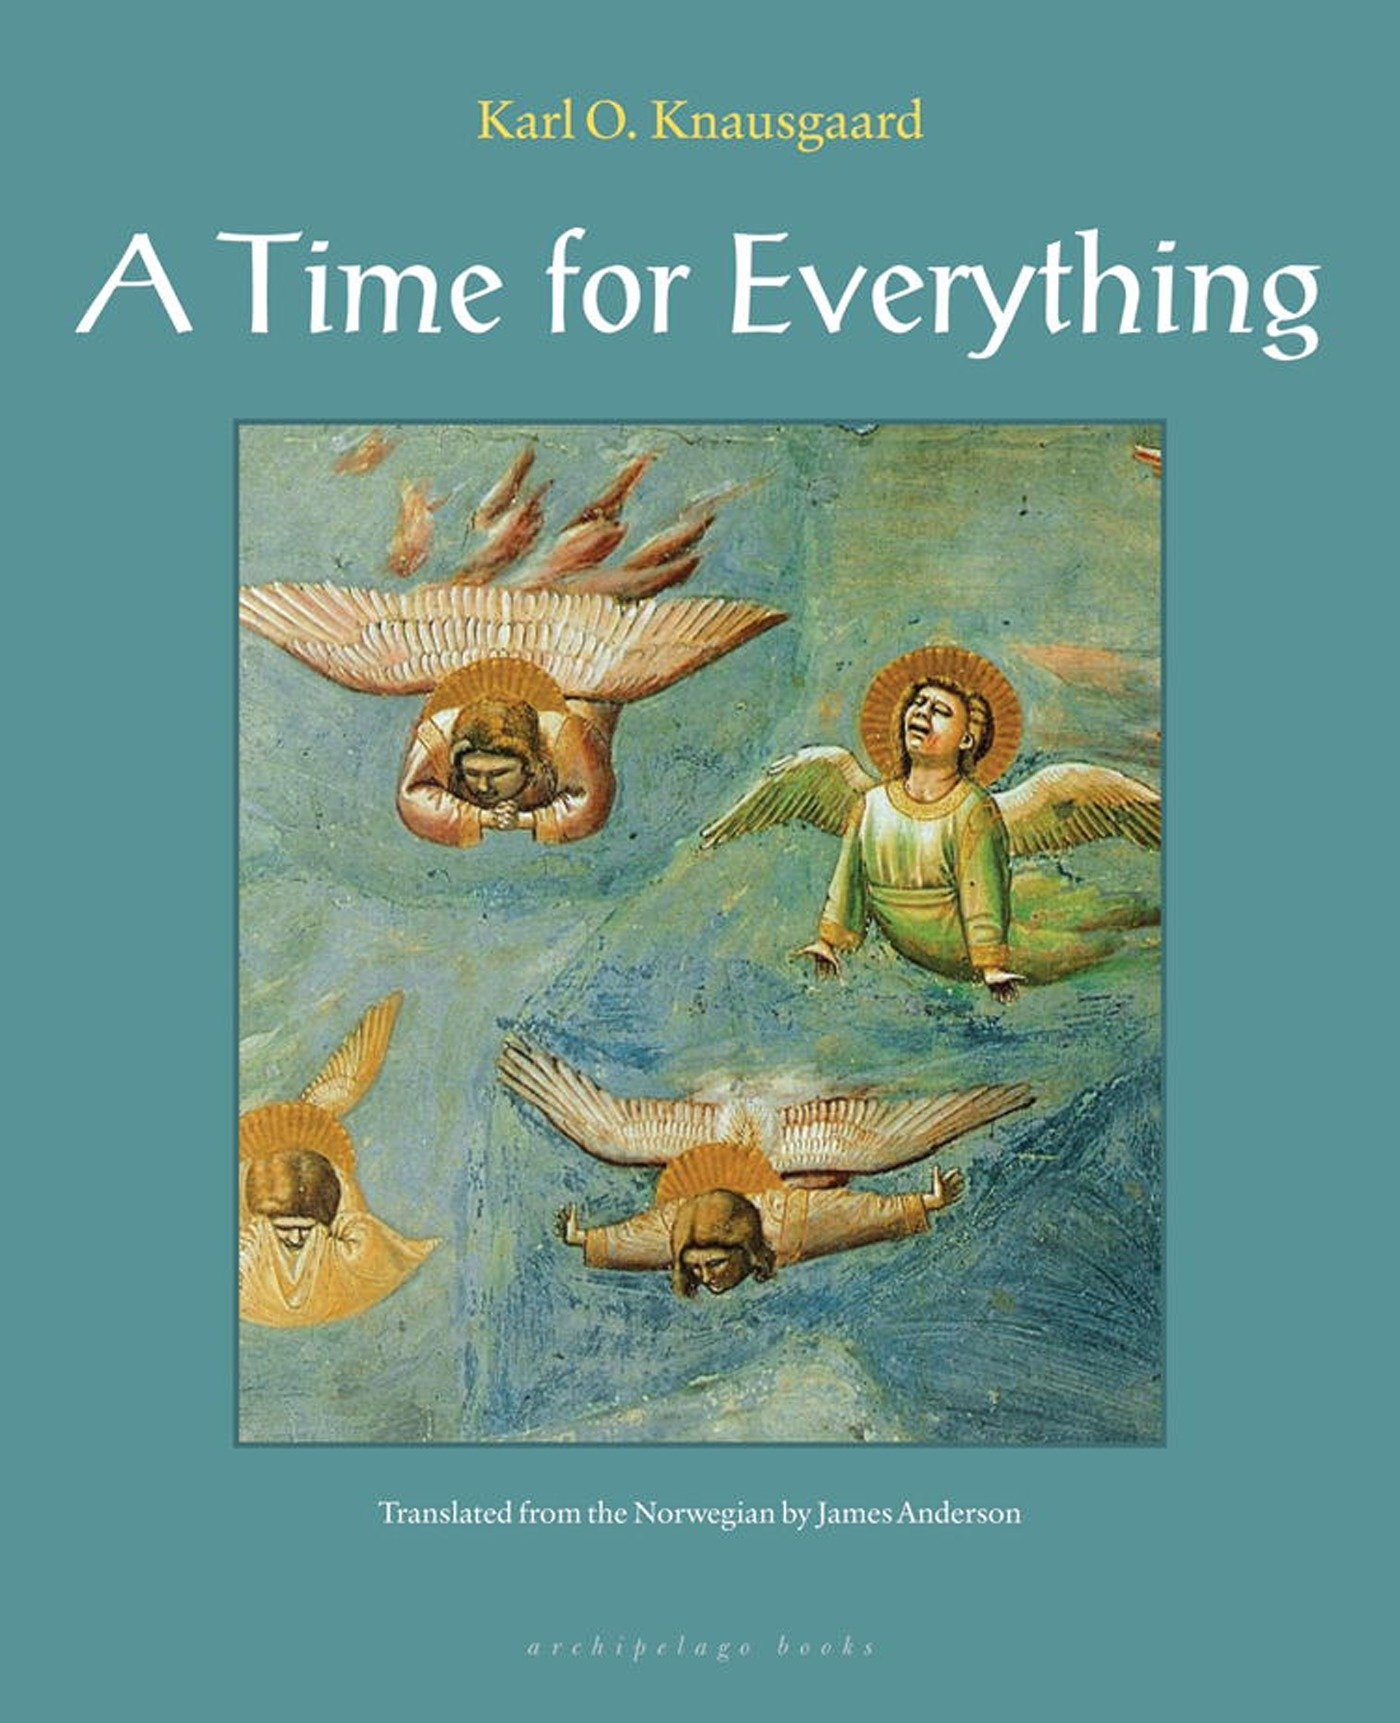 amazon a time for everything karl ove knausgaard james anderson